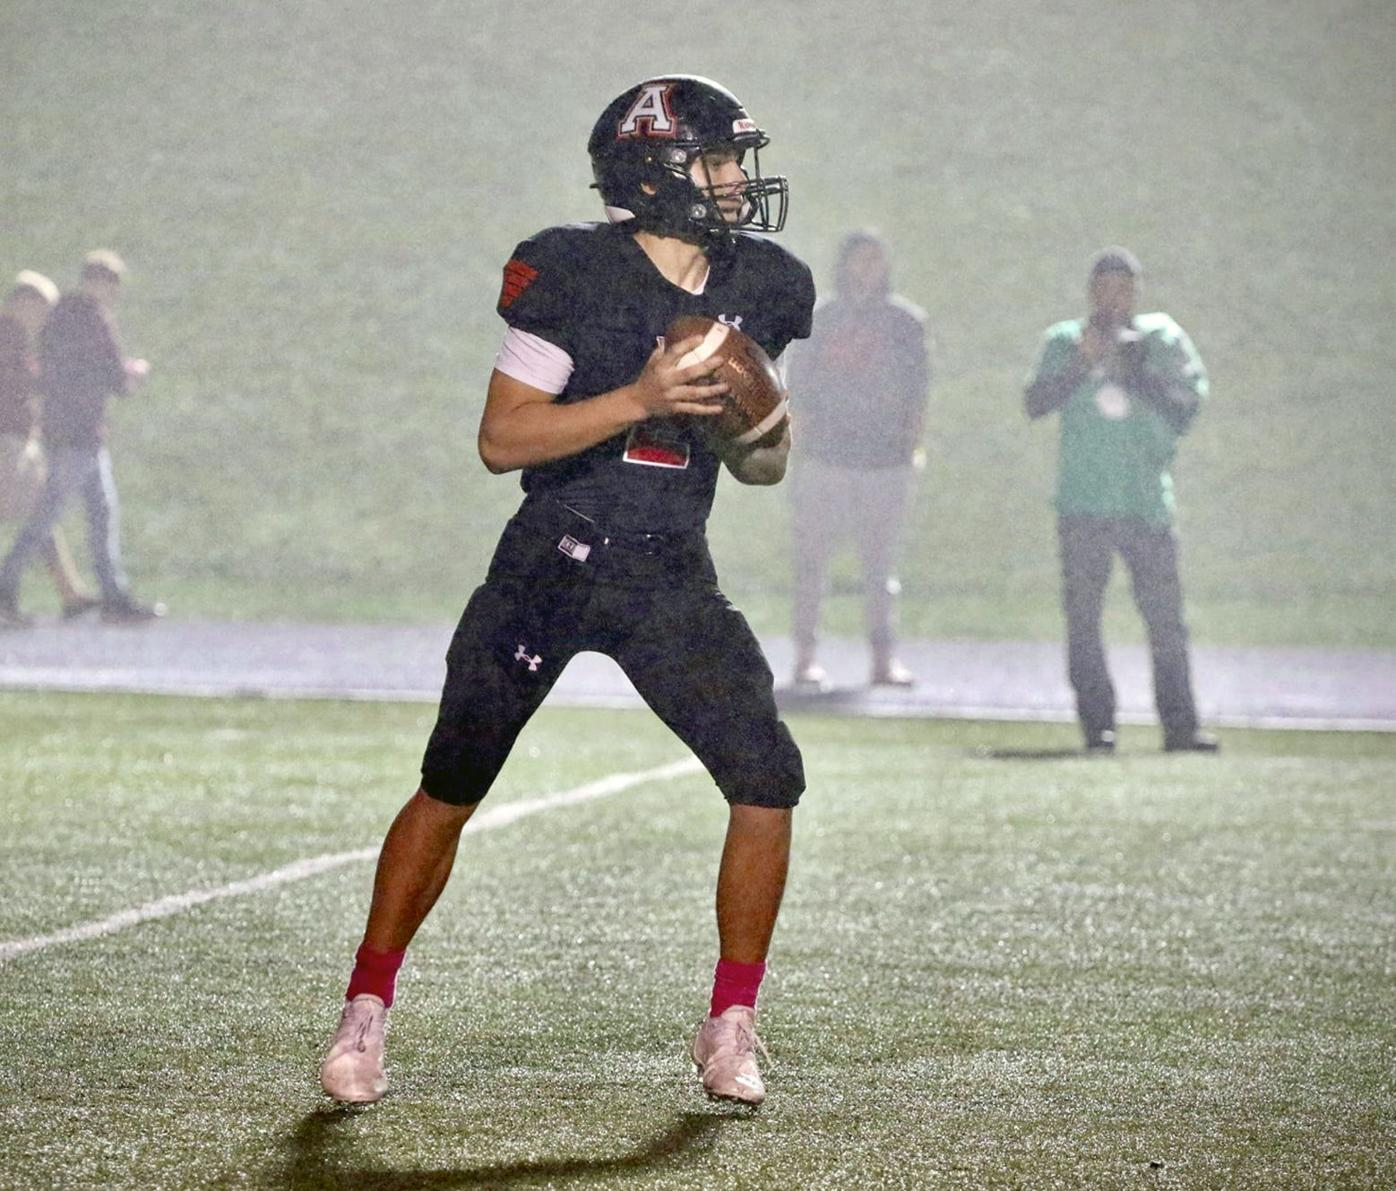 Stanford looking to pass in steady rain